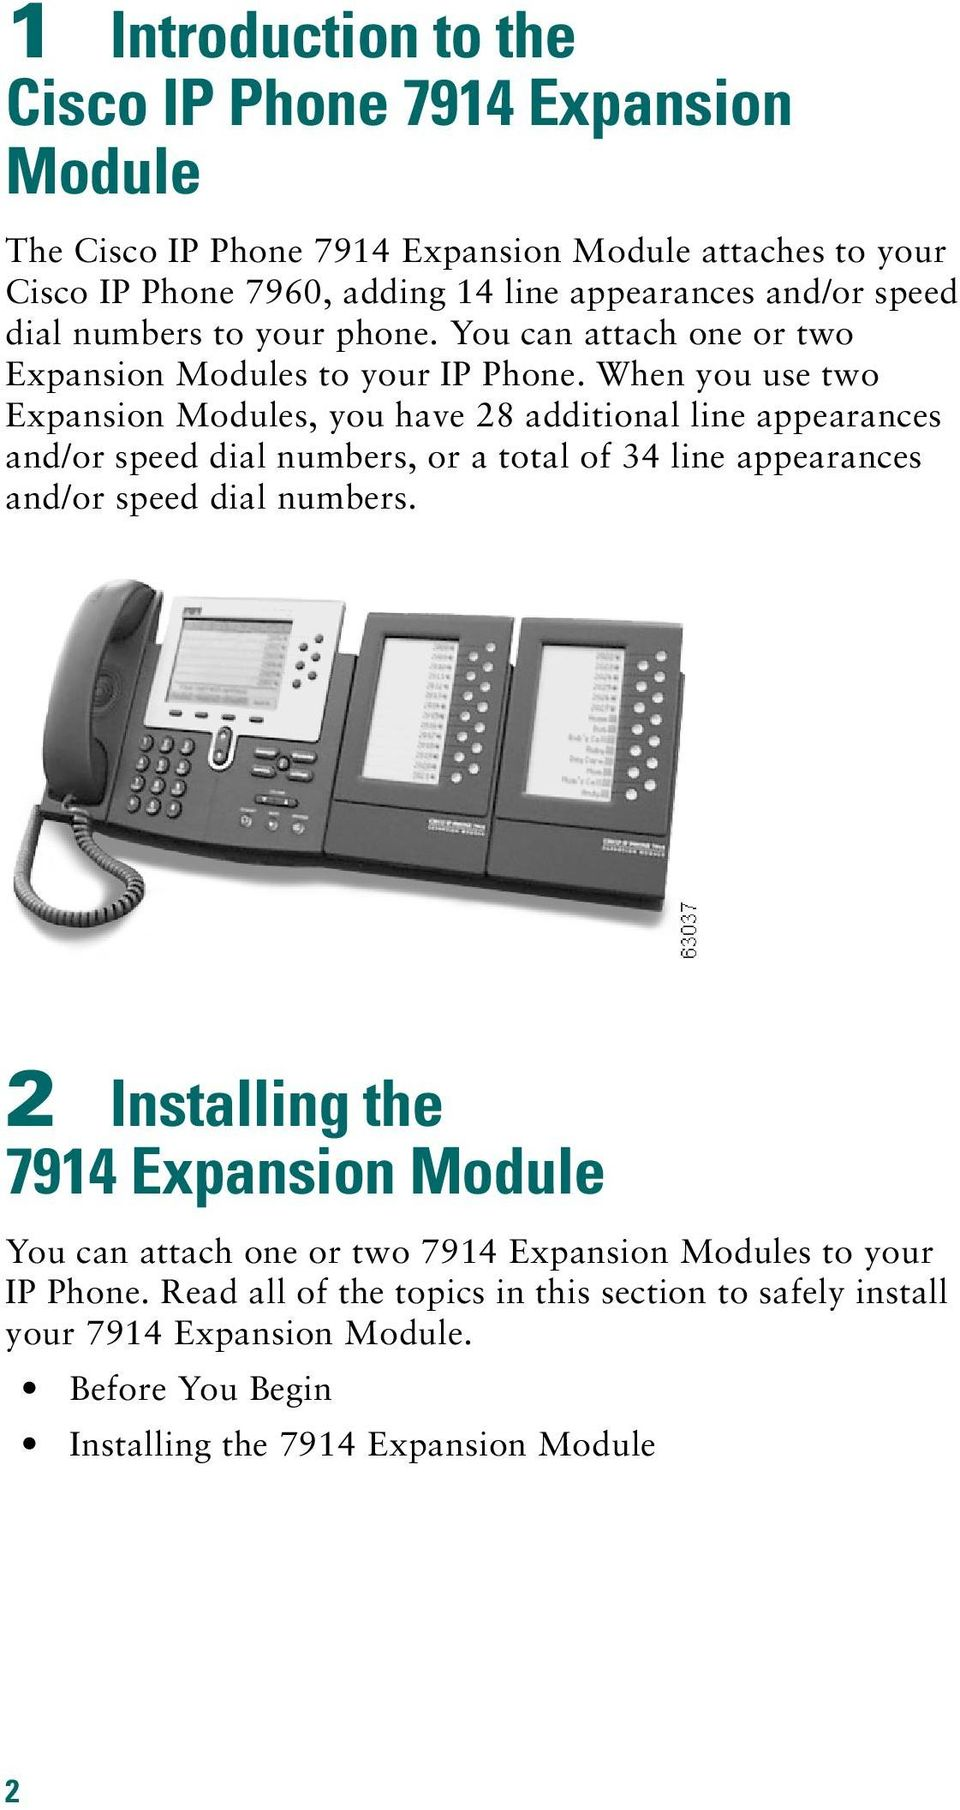 When you use two Expansion Modules, you have 28 additional line appearances and/or speed dial numbers, or a total of 34 line appearances and/or speed dial numbers.